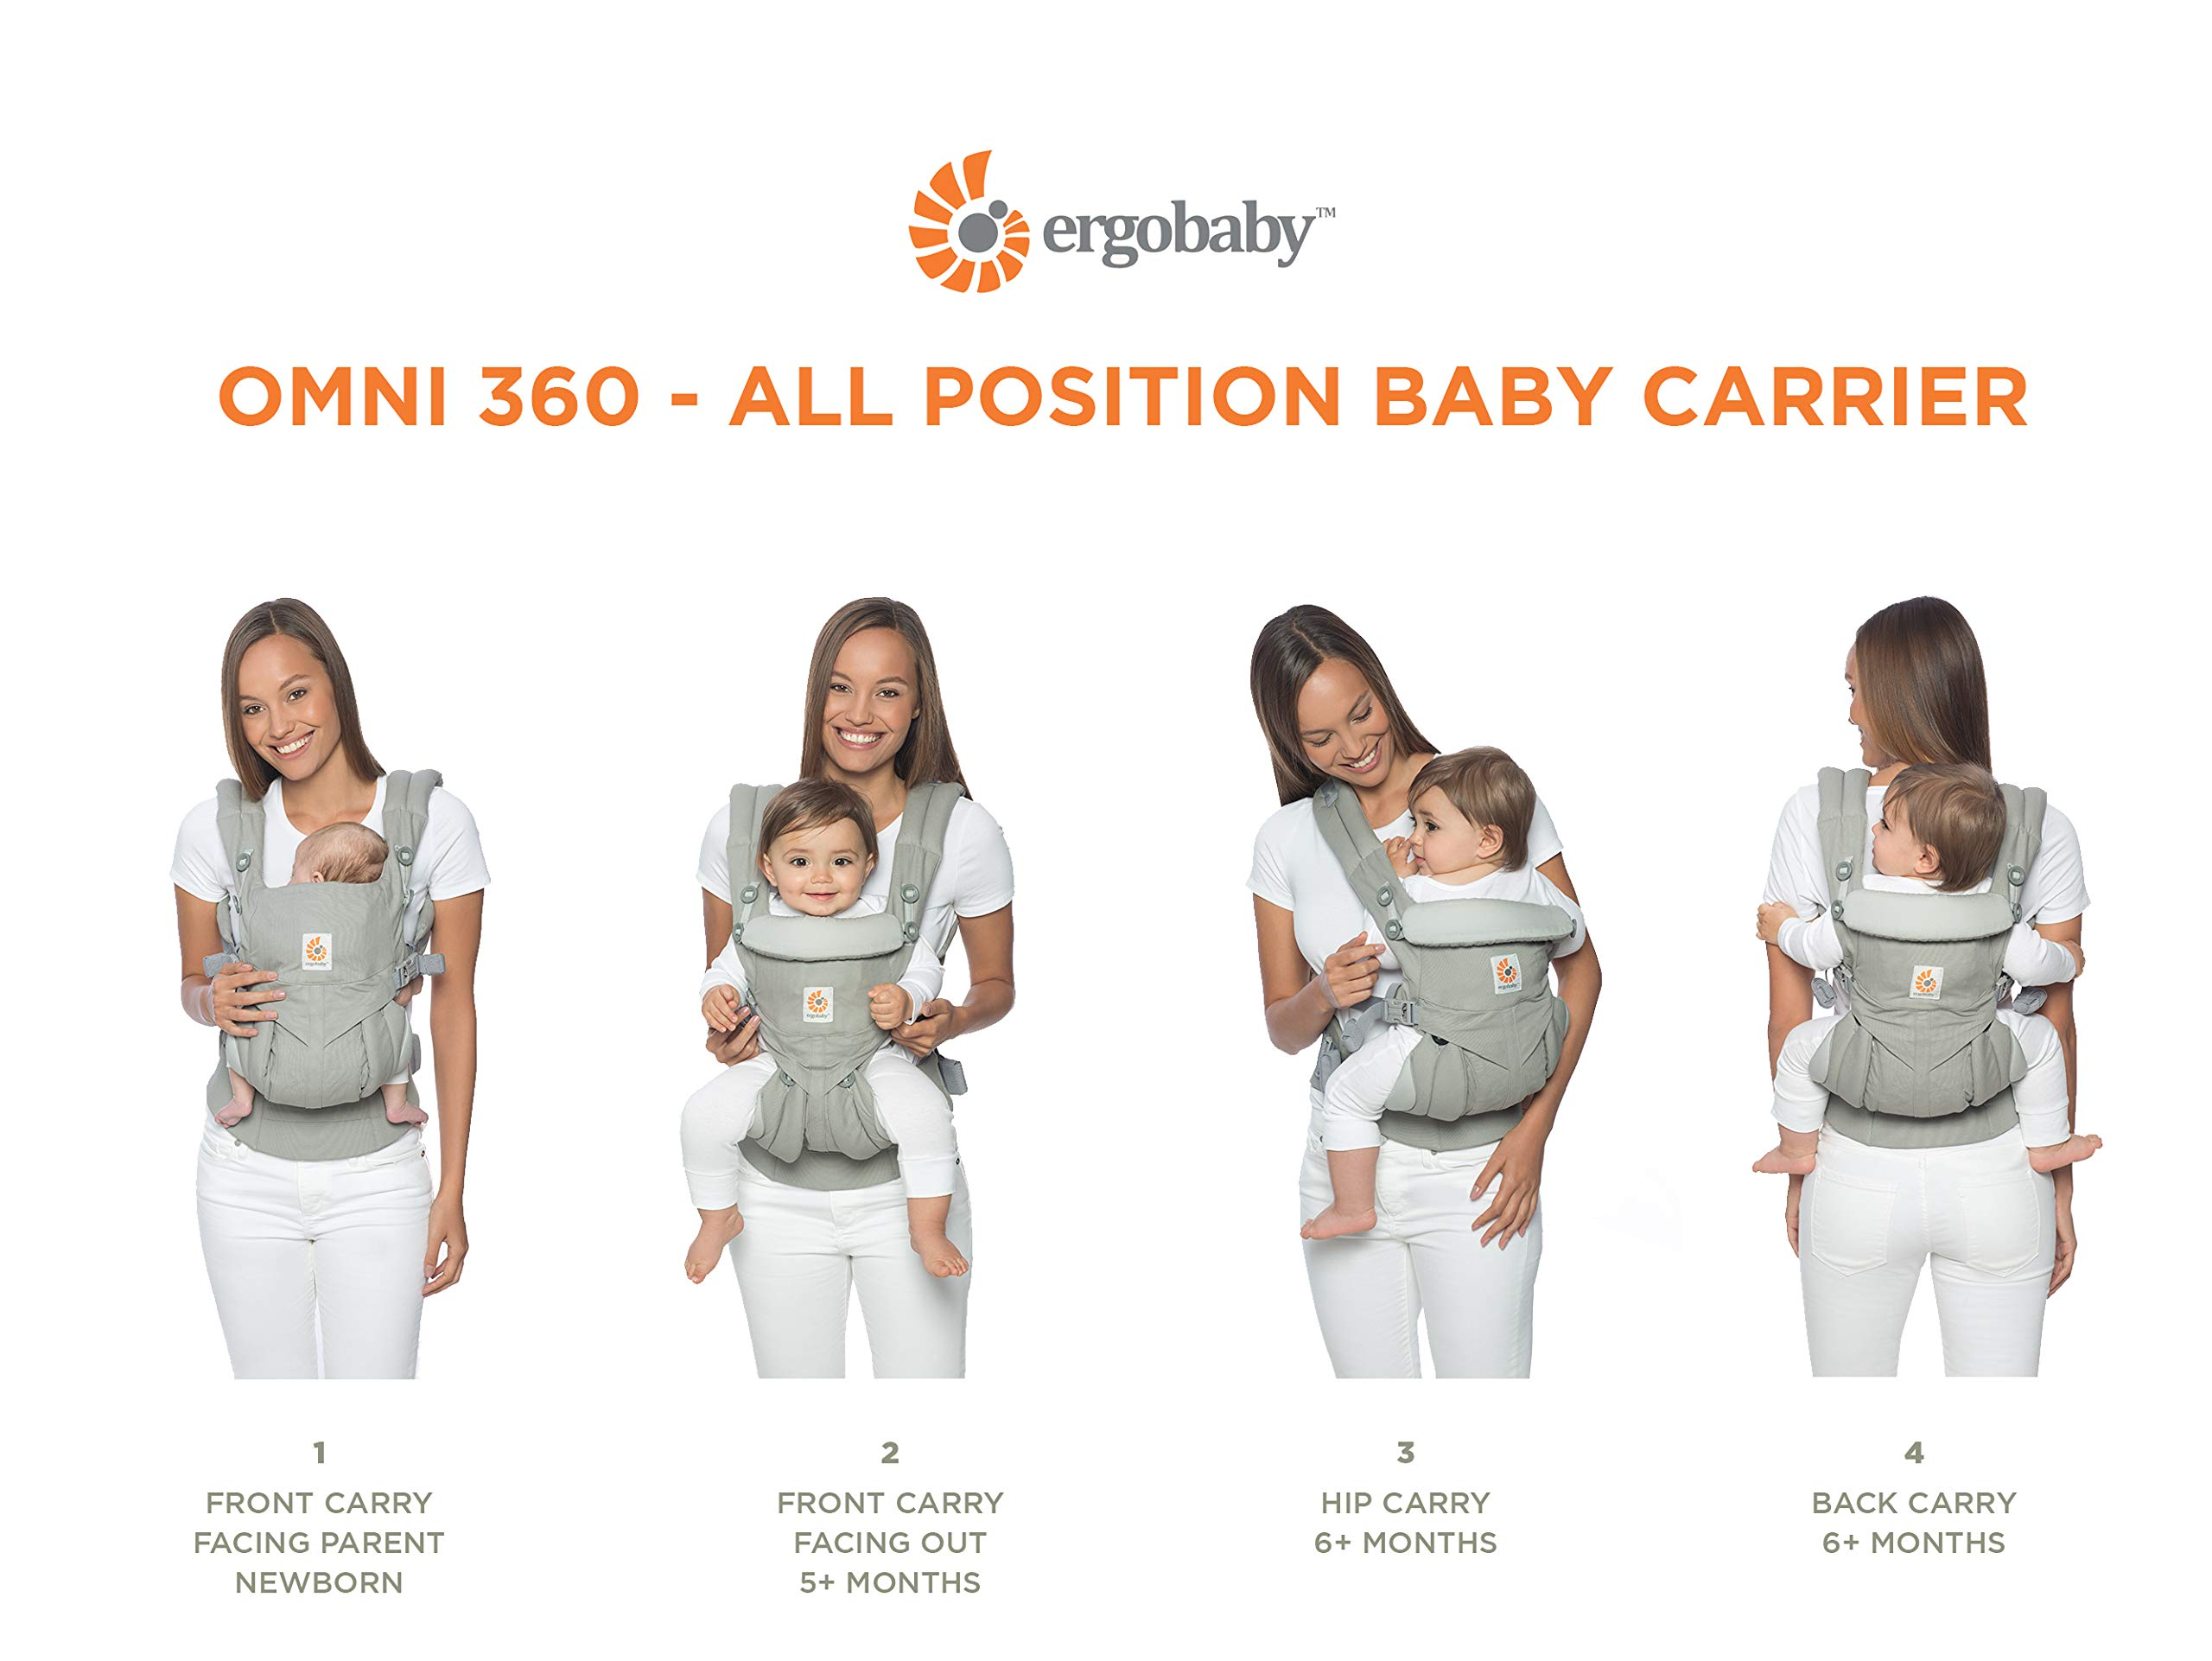 Ergobaby Baby Carrier for Newborn to Toddler, Ergonomic 4-Position Omni 360 Cool Air Midnight Blue, Baby Carrier Front Back Front Facing, Backpack Ergobaby Baby carrier with 4 ergonomic wearing positions: parent facing, on the back, on the hip and on the front facing outwards. four ergonomic carry positions and easy to use. Adapts to baby's growth: infant baby carrier new-born to toddler (7-33 lbs./ 3.2 to 20 kg), no infant insert needed Breathable 3d air mesh material ensures the optimal temperature of the baby. includes removable belt pouch. 4